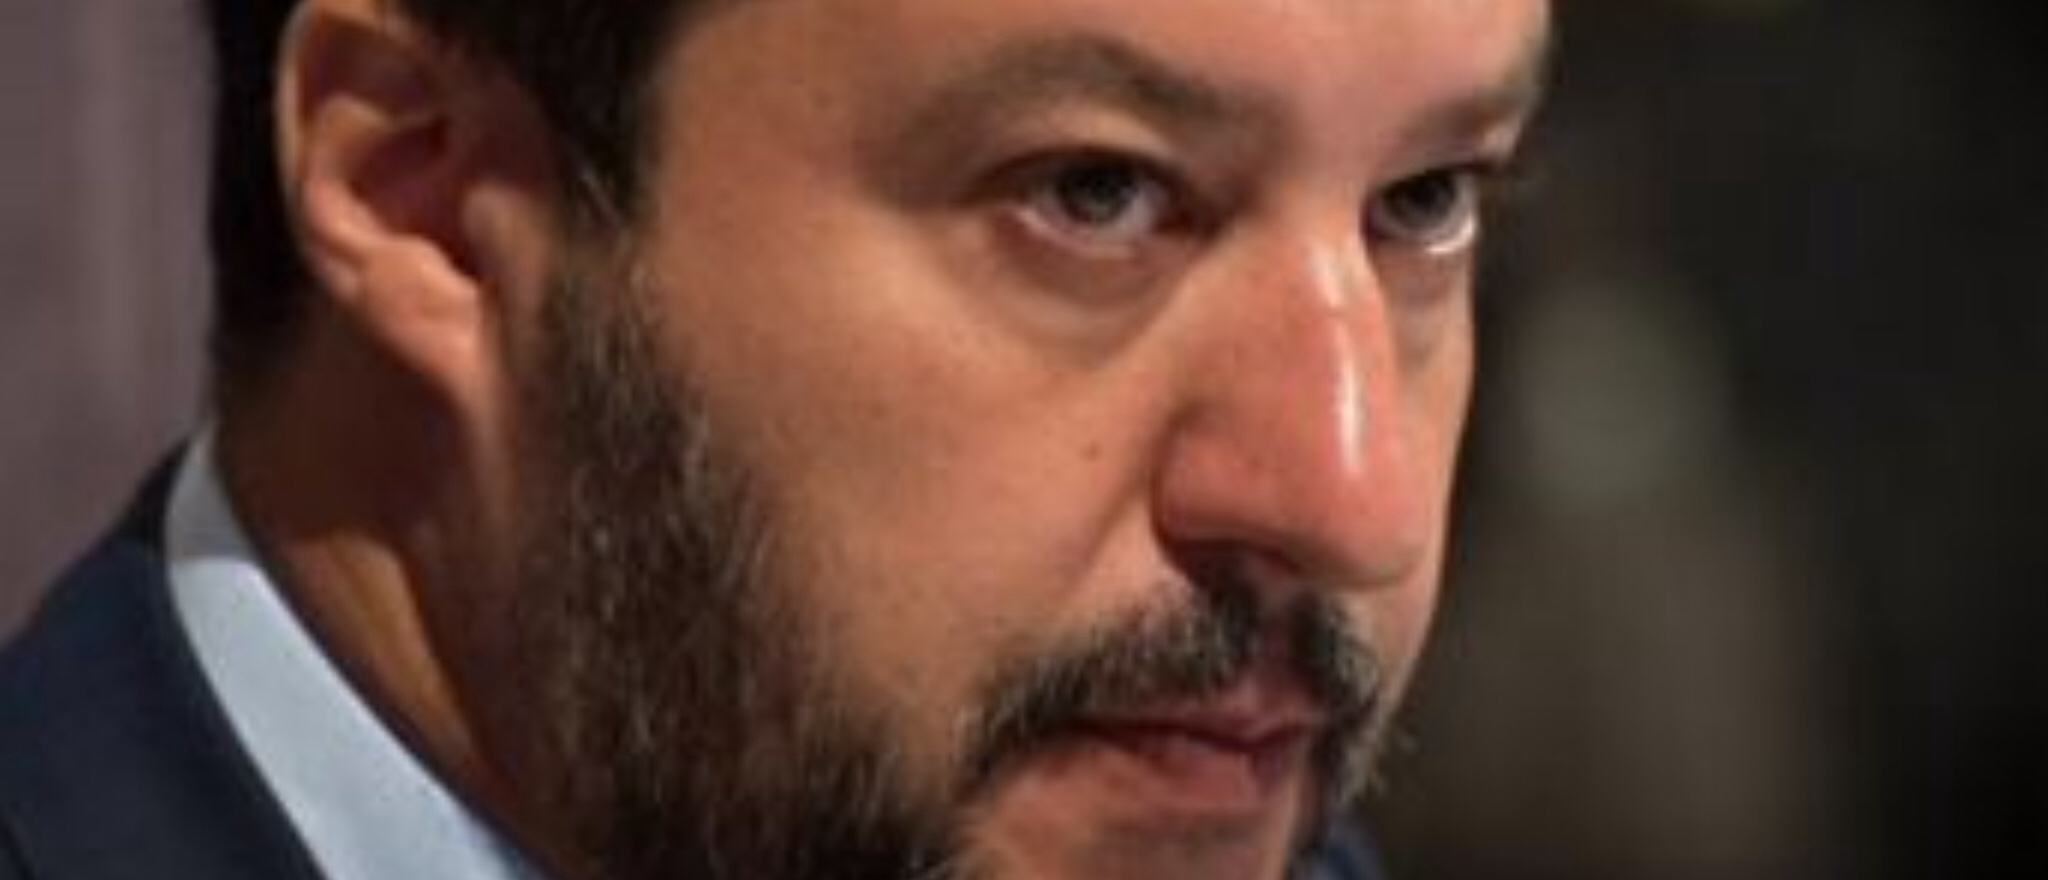 Salvini concerned by vd Leyen election